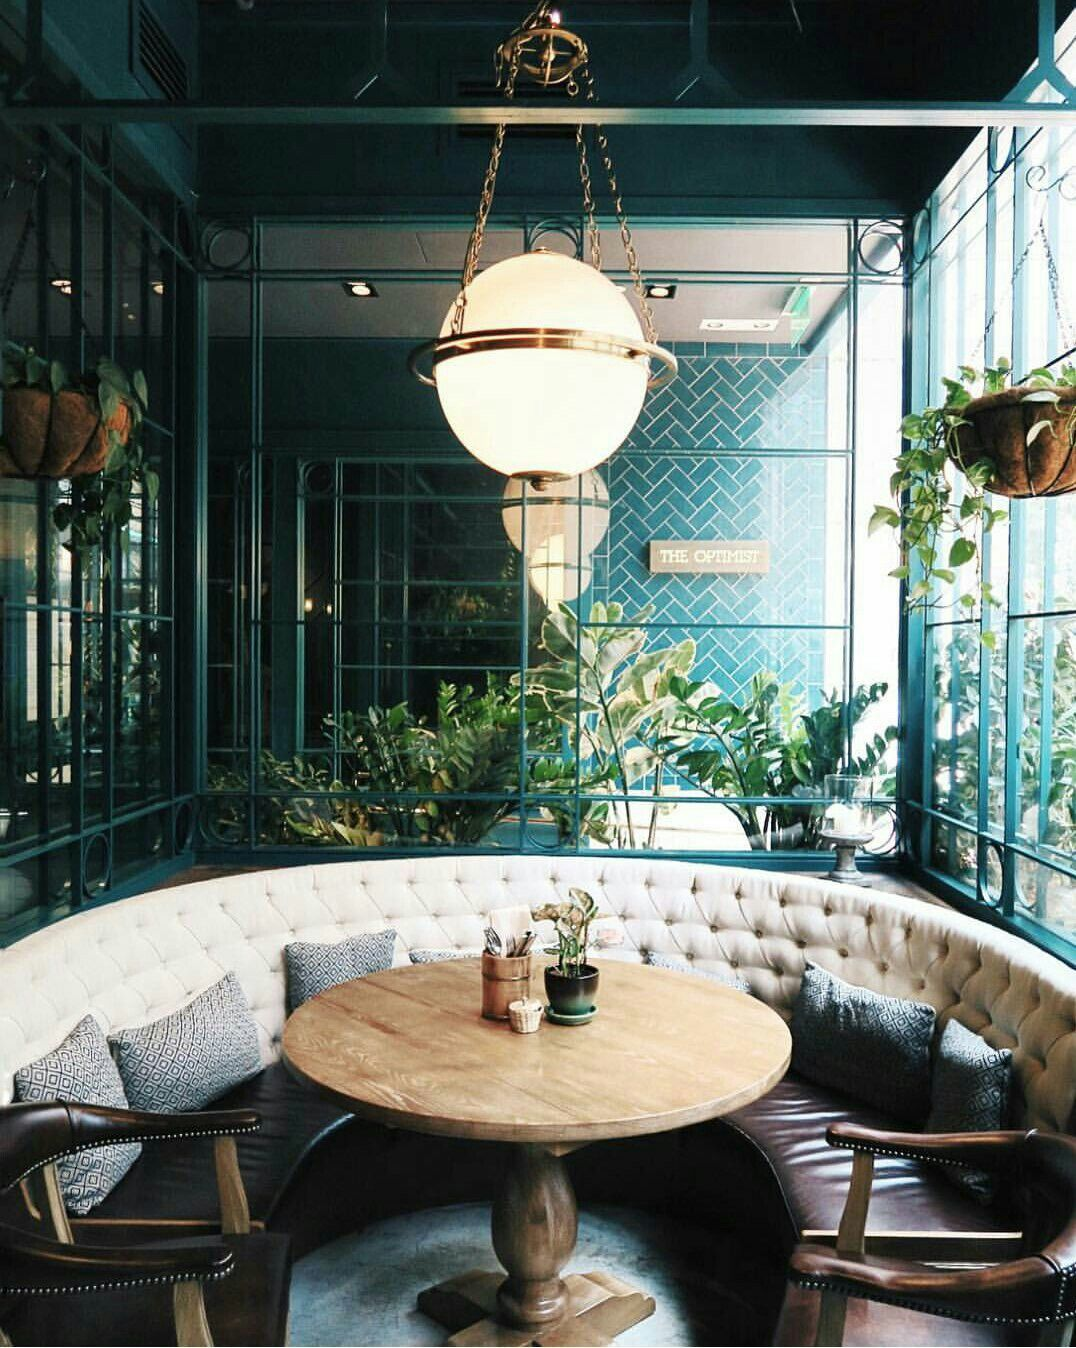 Entertain With Images Restaurant Design Inspiration